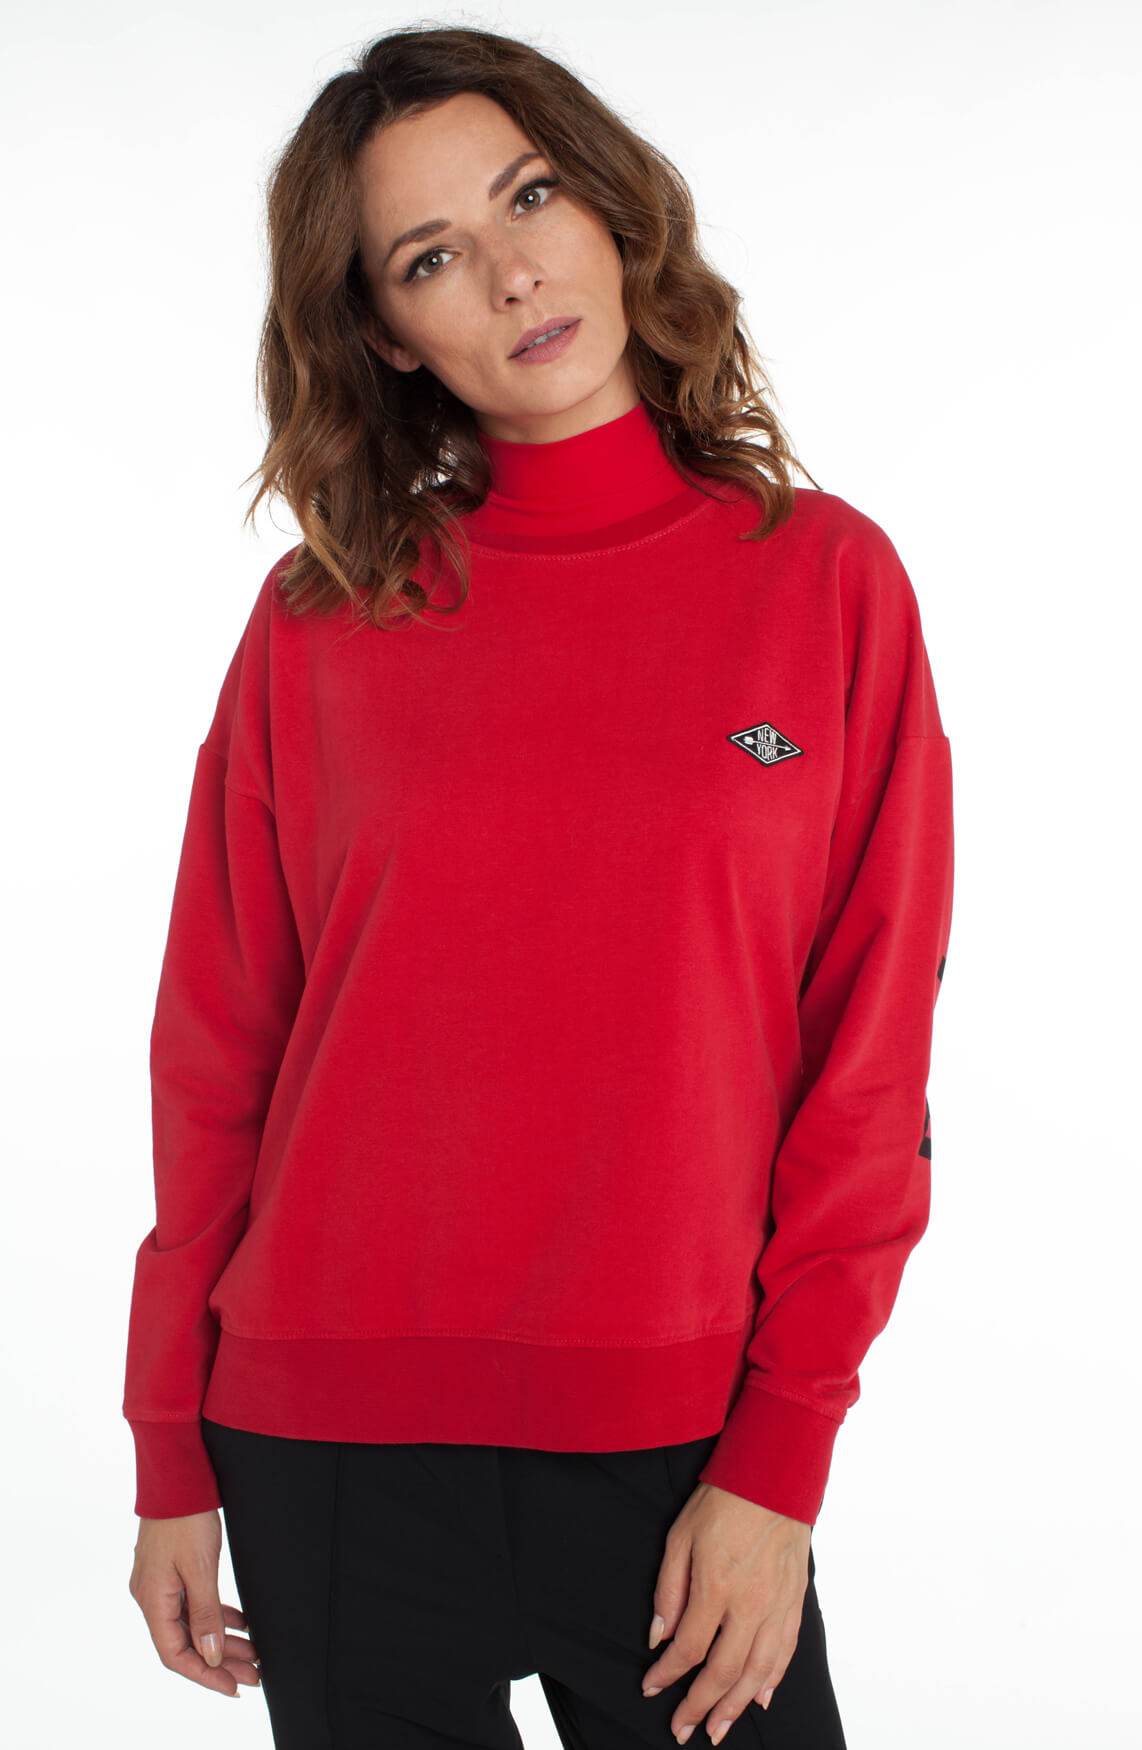 Penn & Ink Dames Sweater met tekstopdruk Rood